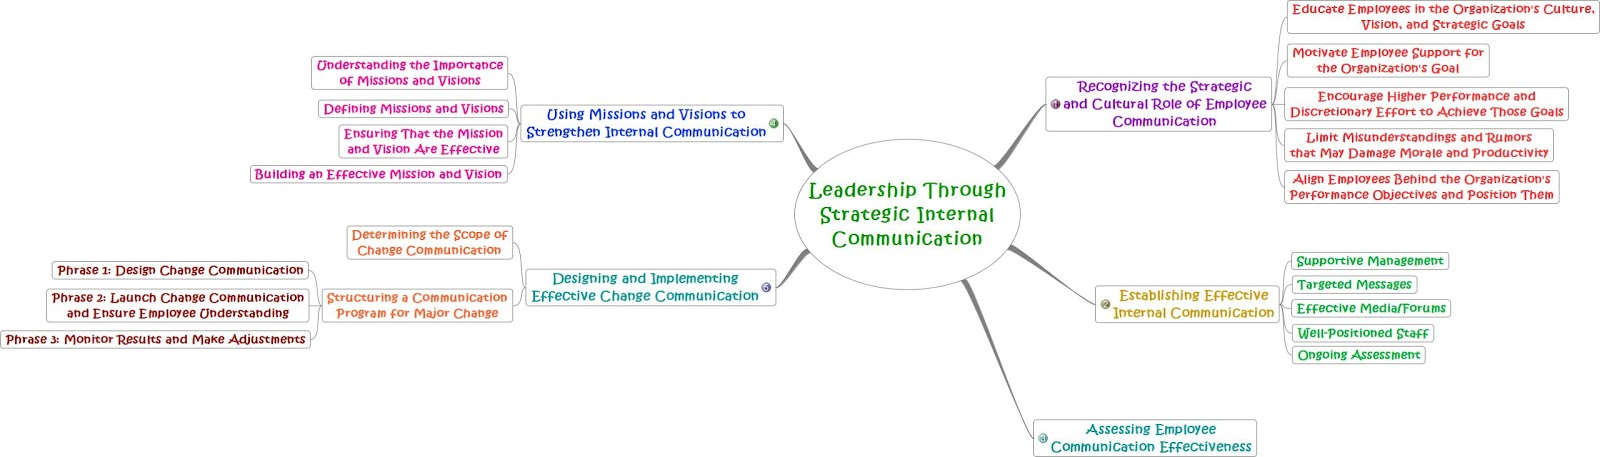 Internal communications strategy university